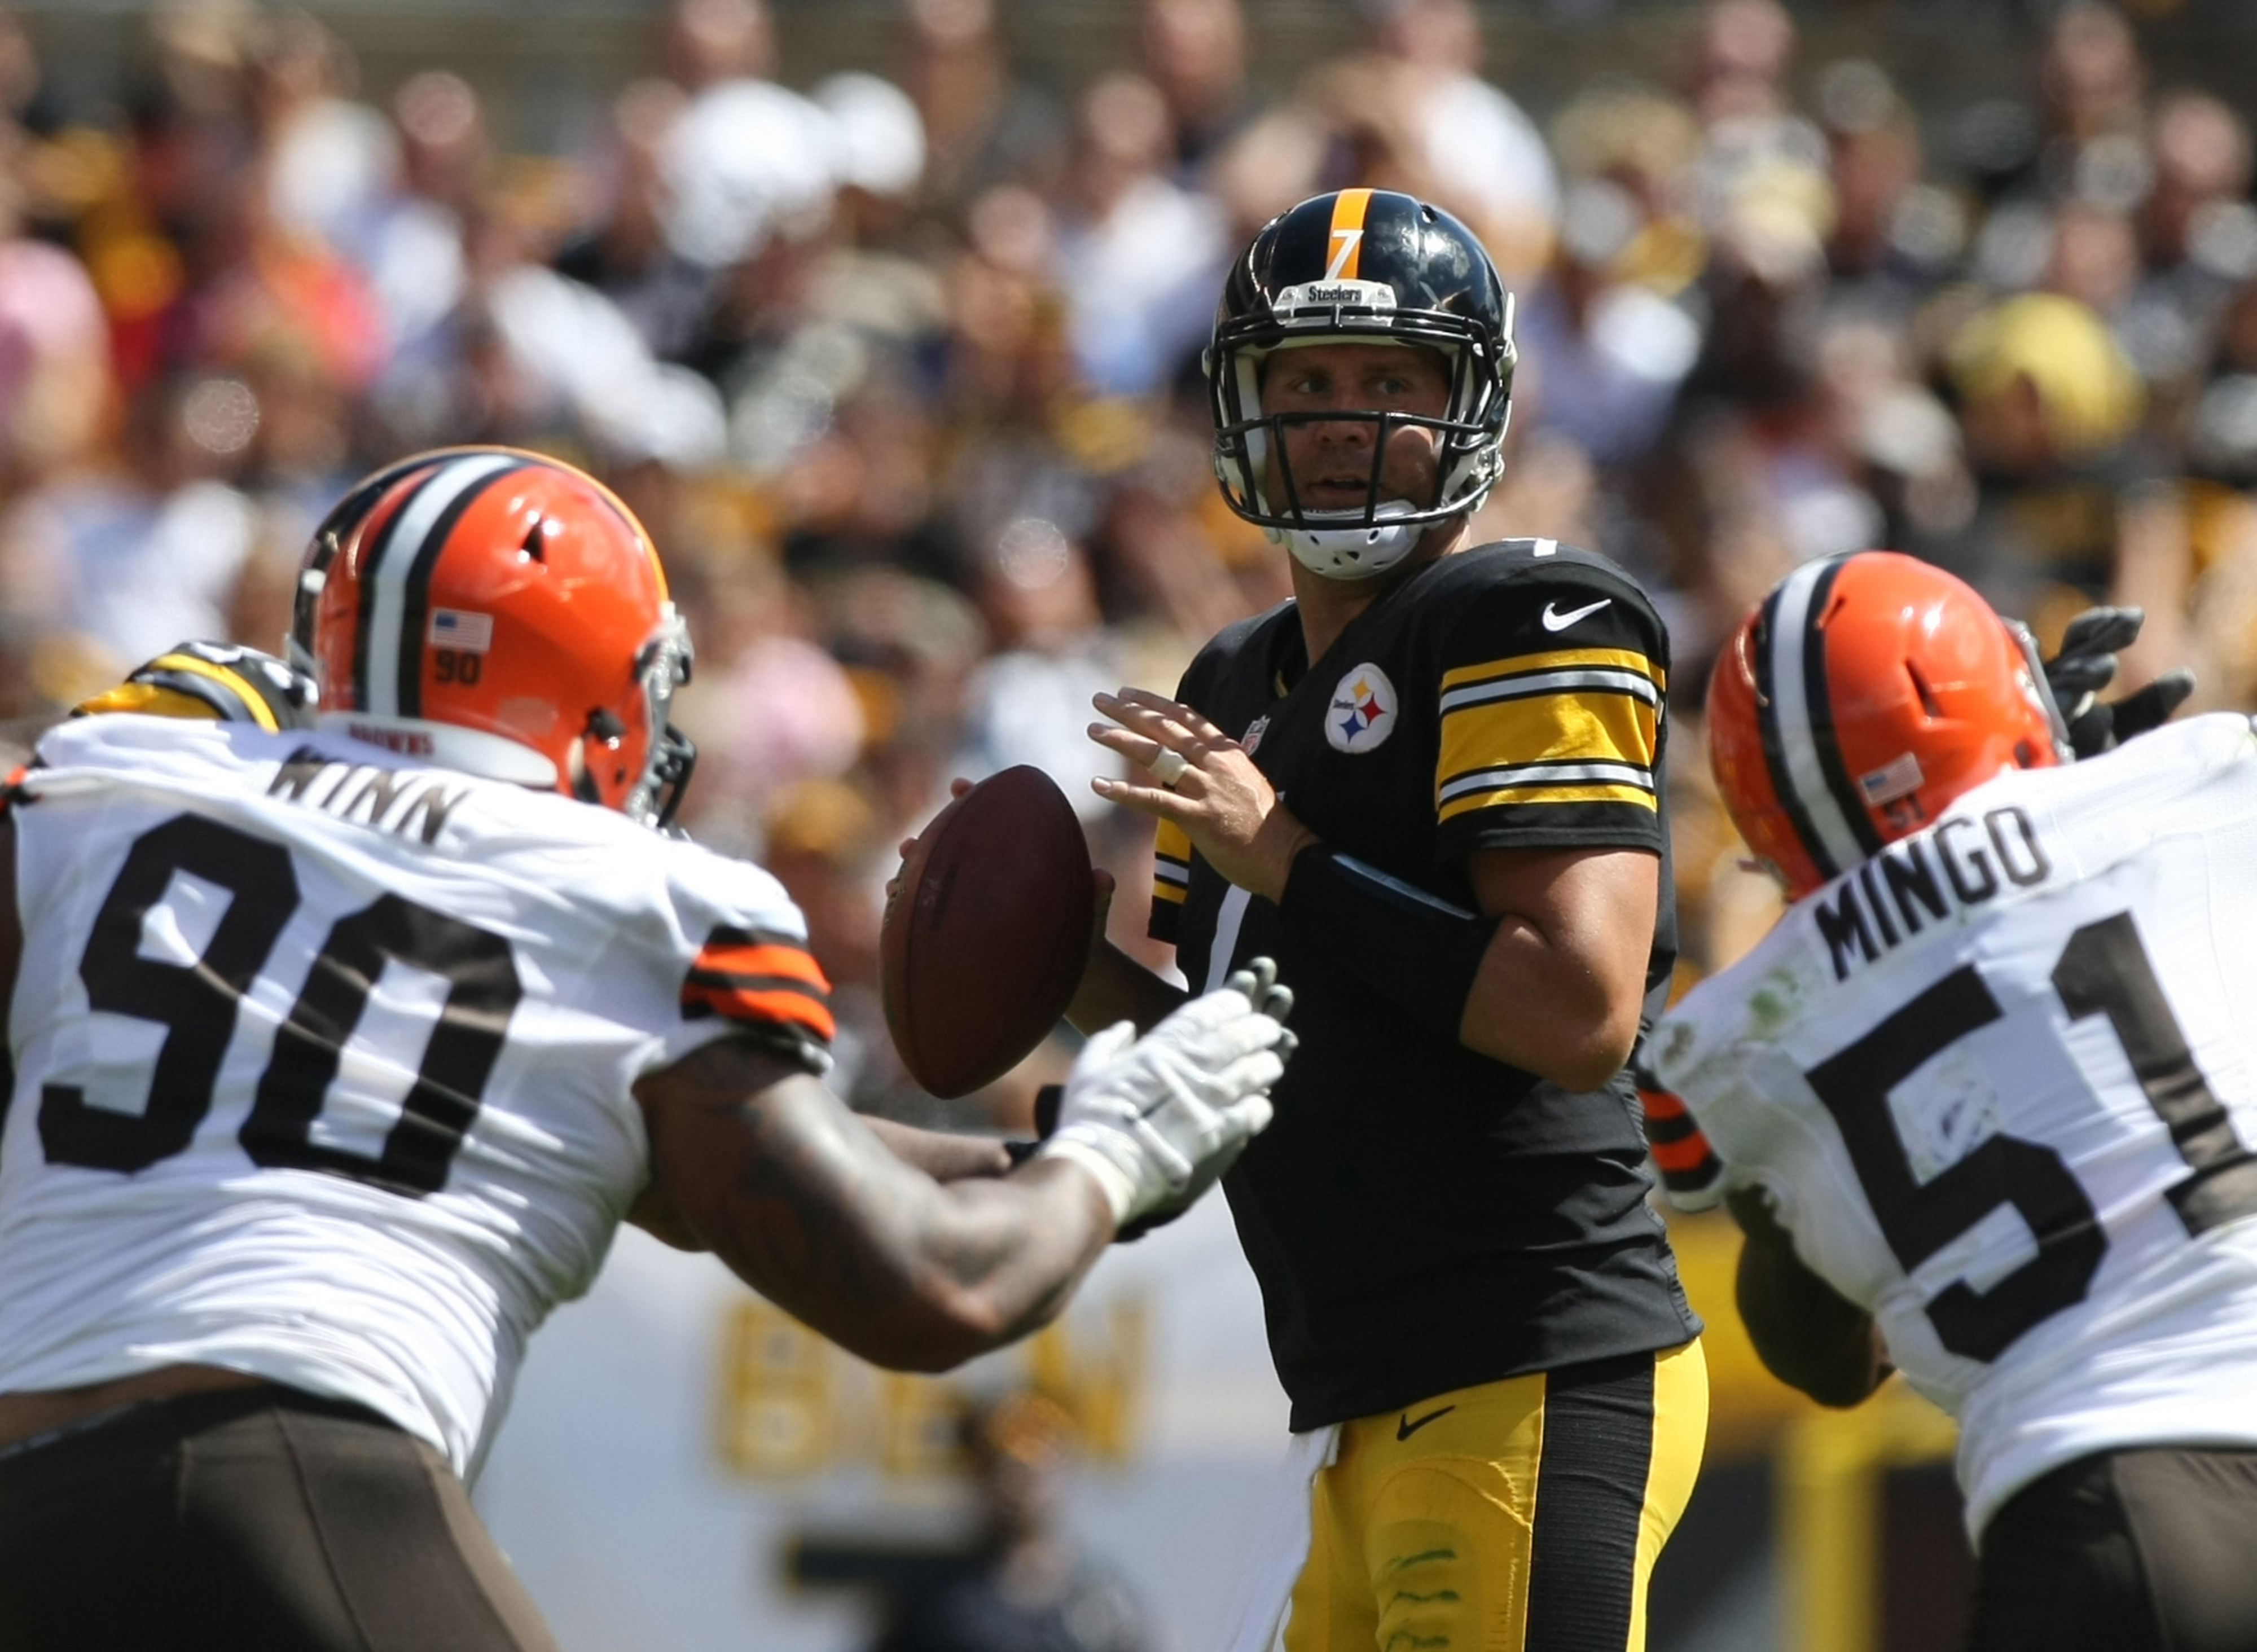 Browns vs. Steelers final score: 3 things we learned from a Pittsburgh's last second win